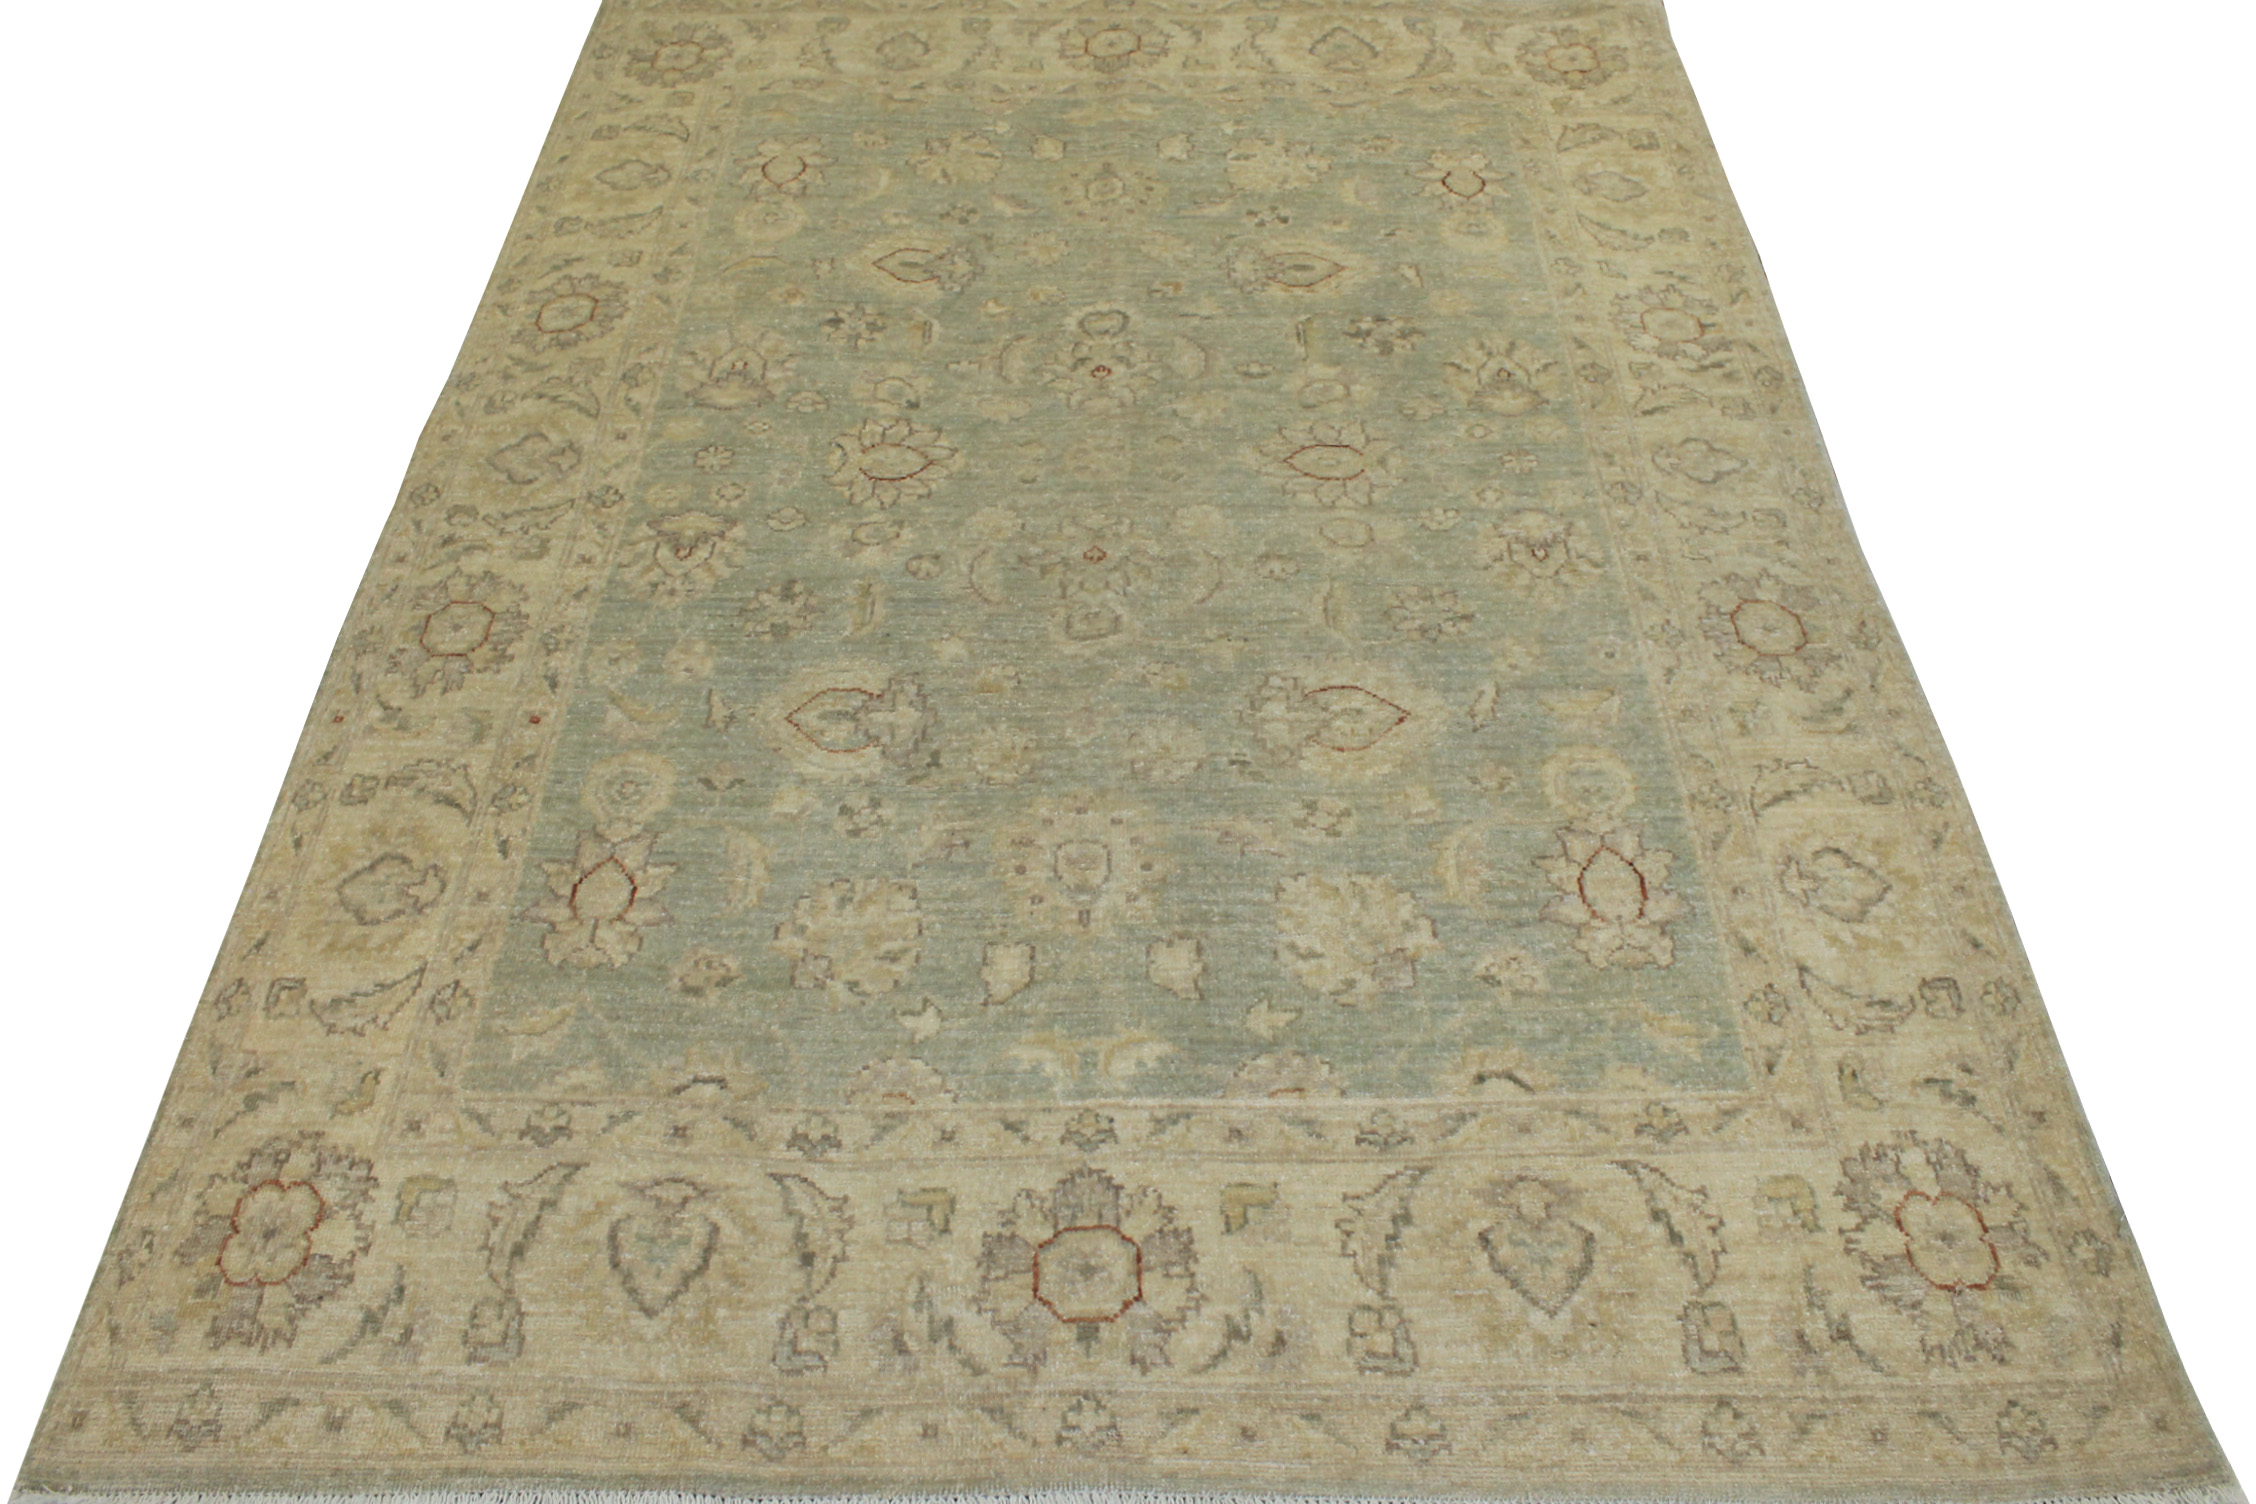 5x7/8 Peshawar Hand Knotted Wool Area Rug - MR14465